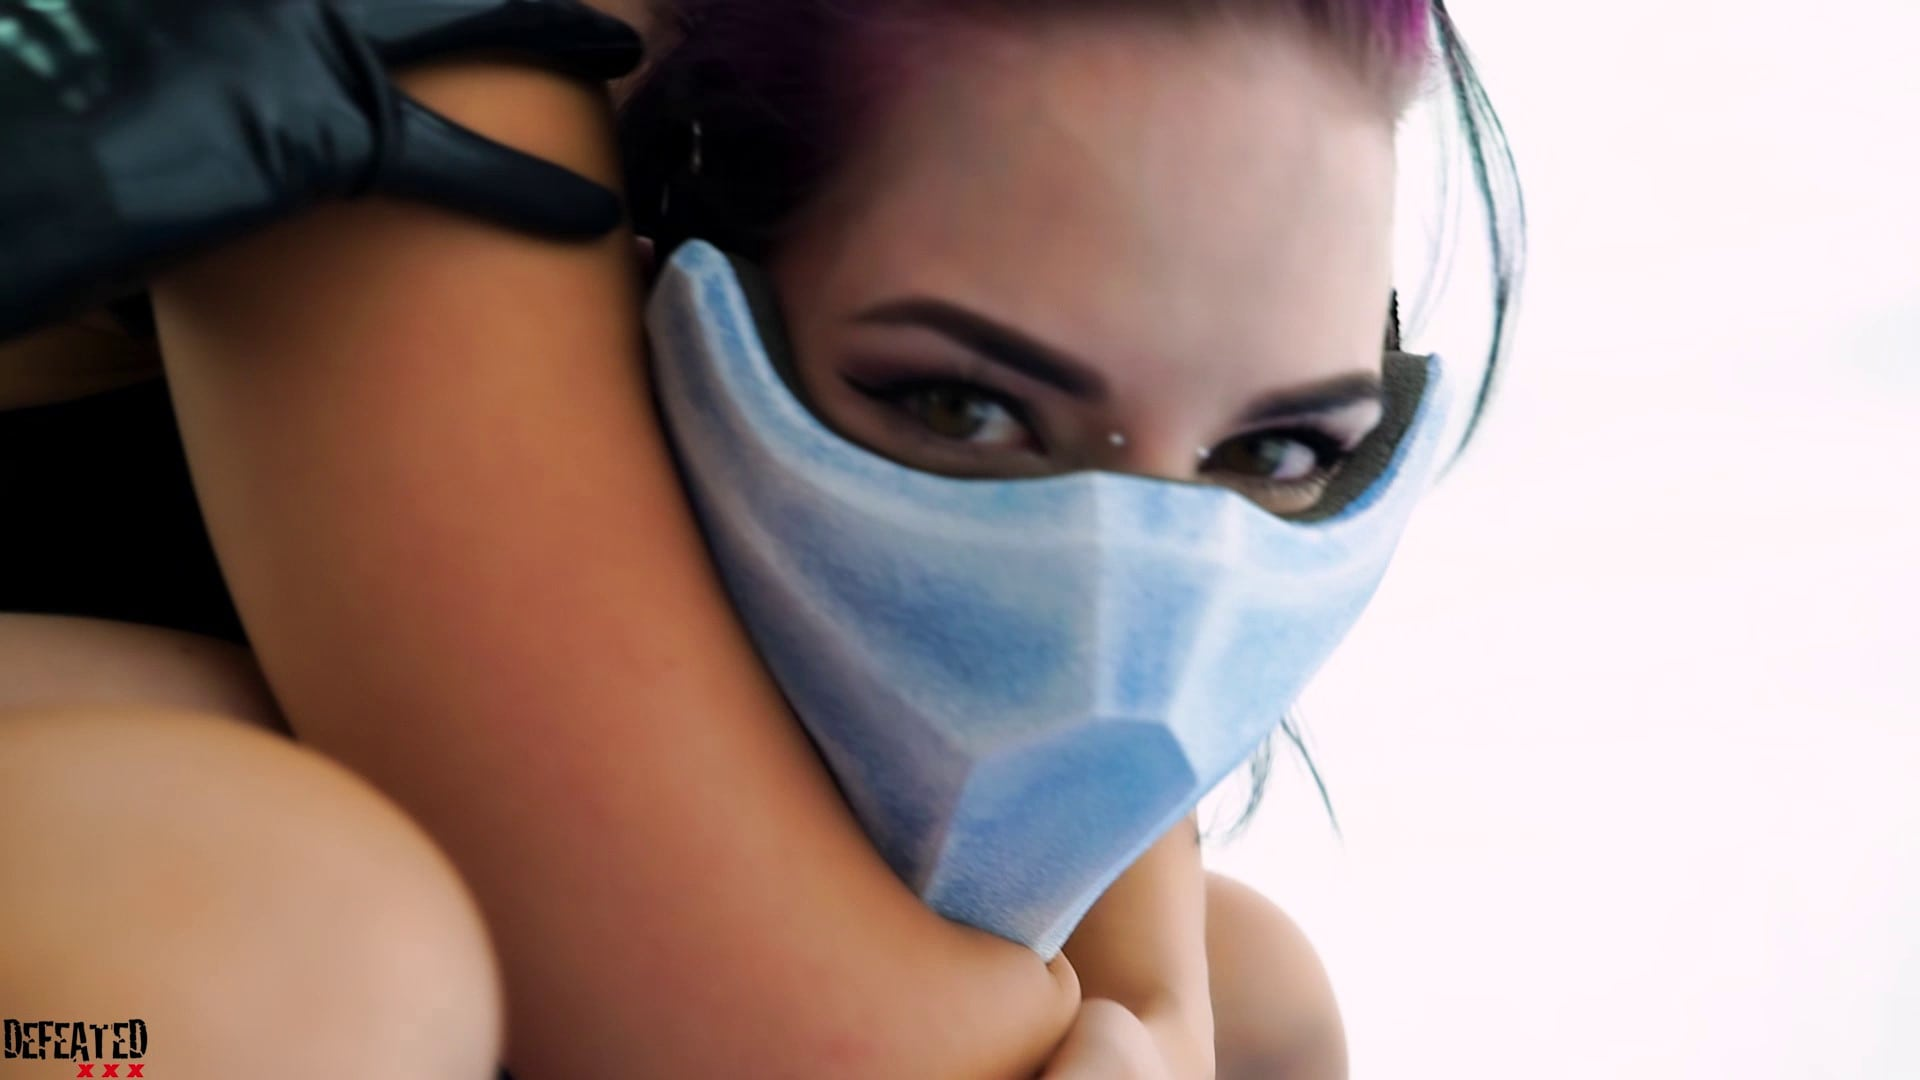 Mask fetish orgy xxx engine issues out in 2